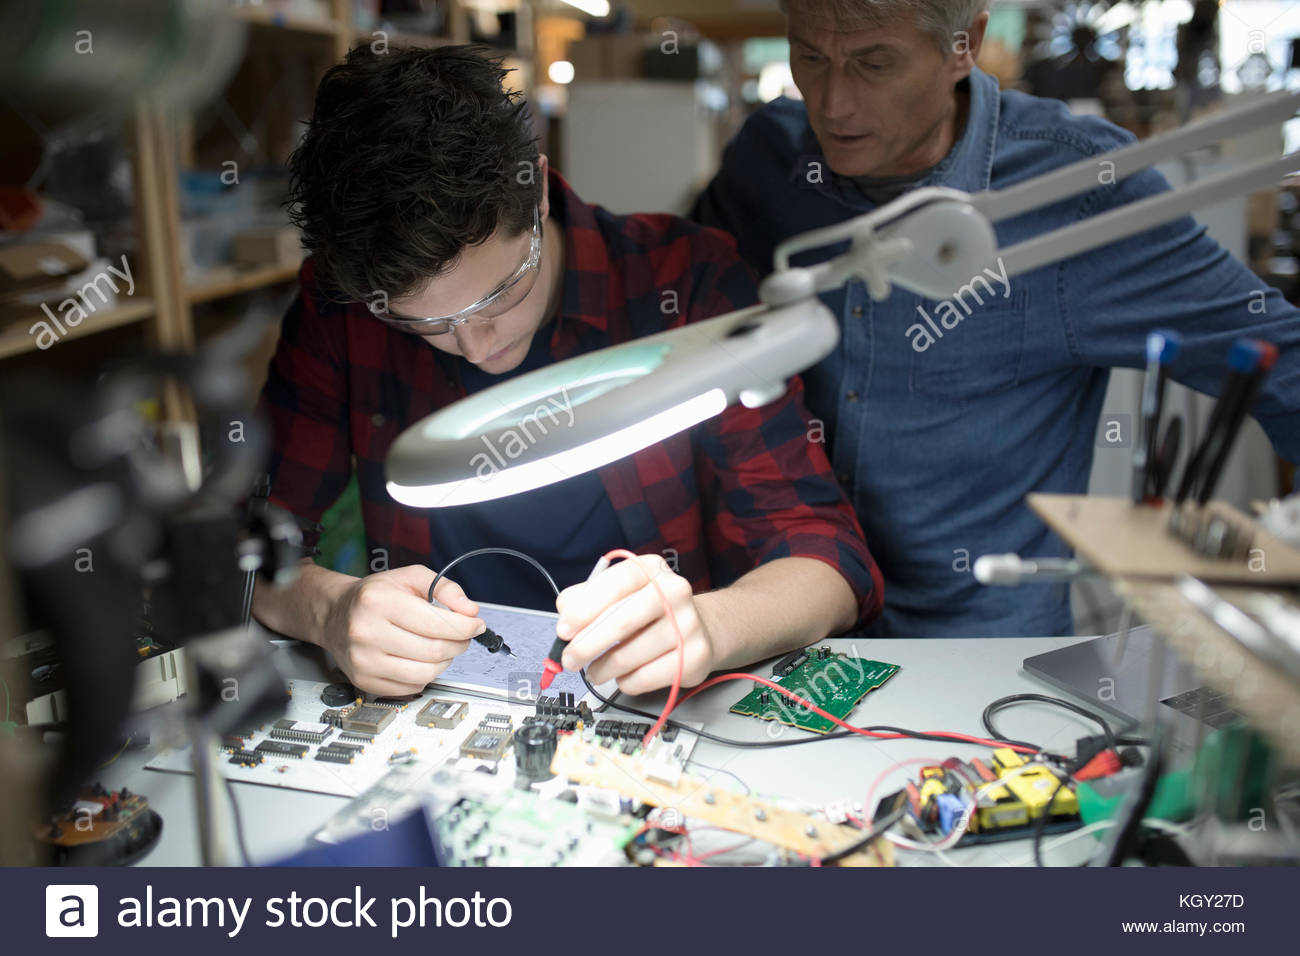 Focused male engineers using soldering iron, assembling electronics circuit board in workshop - Stock Image